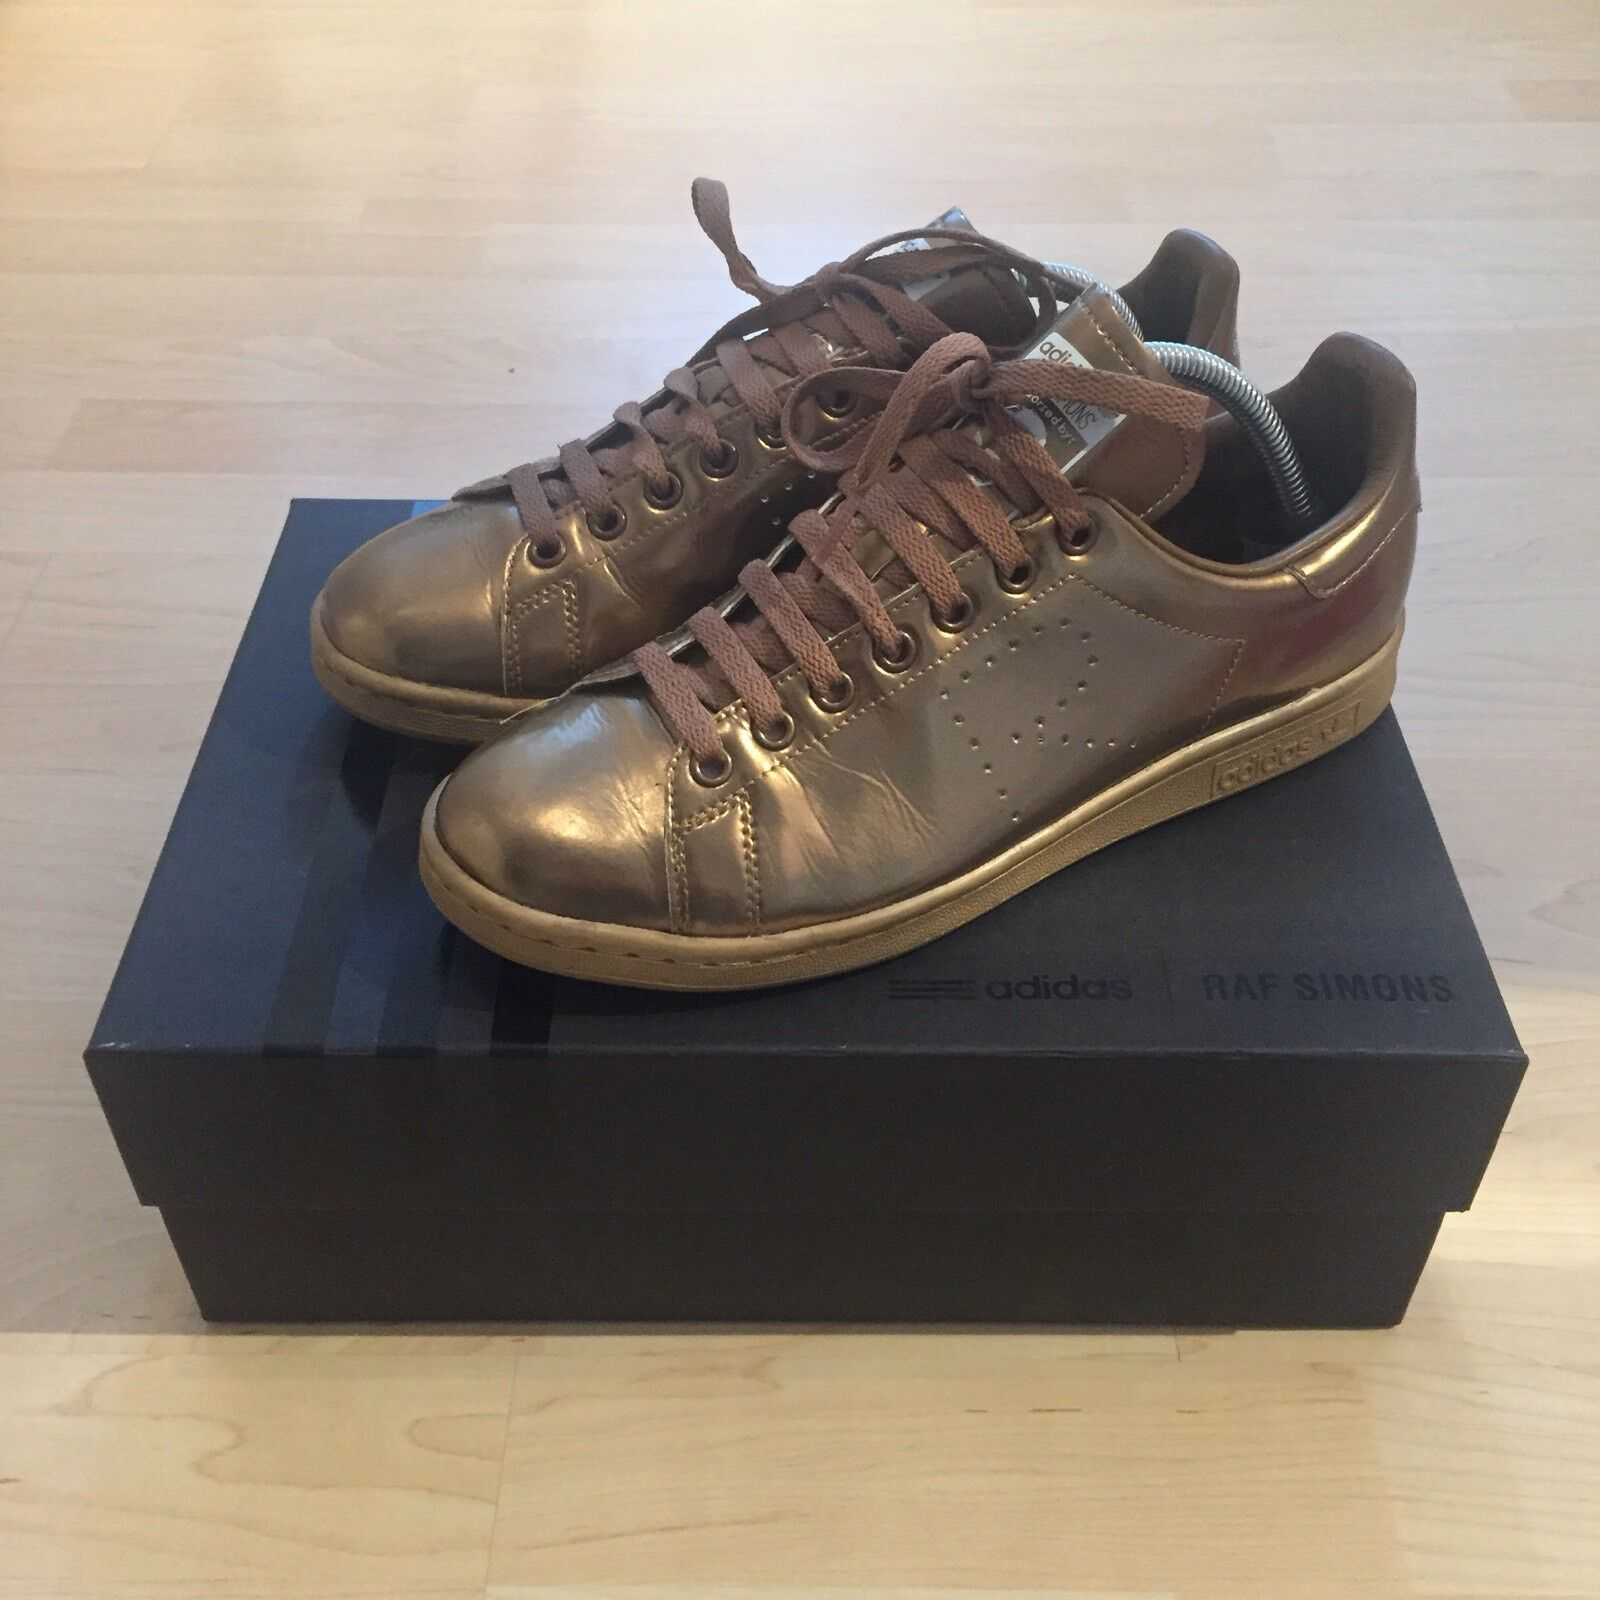 ADIDAS Raf Simons Stan Smith Bronze Copper Gr. 42.5 / 8.5 S75937 Gold